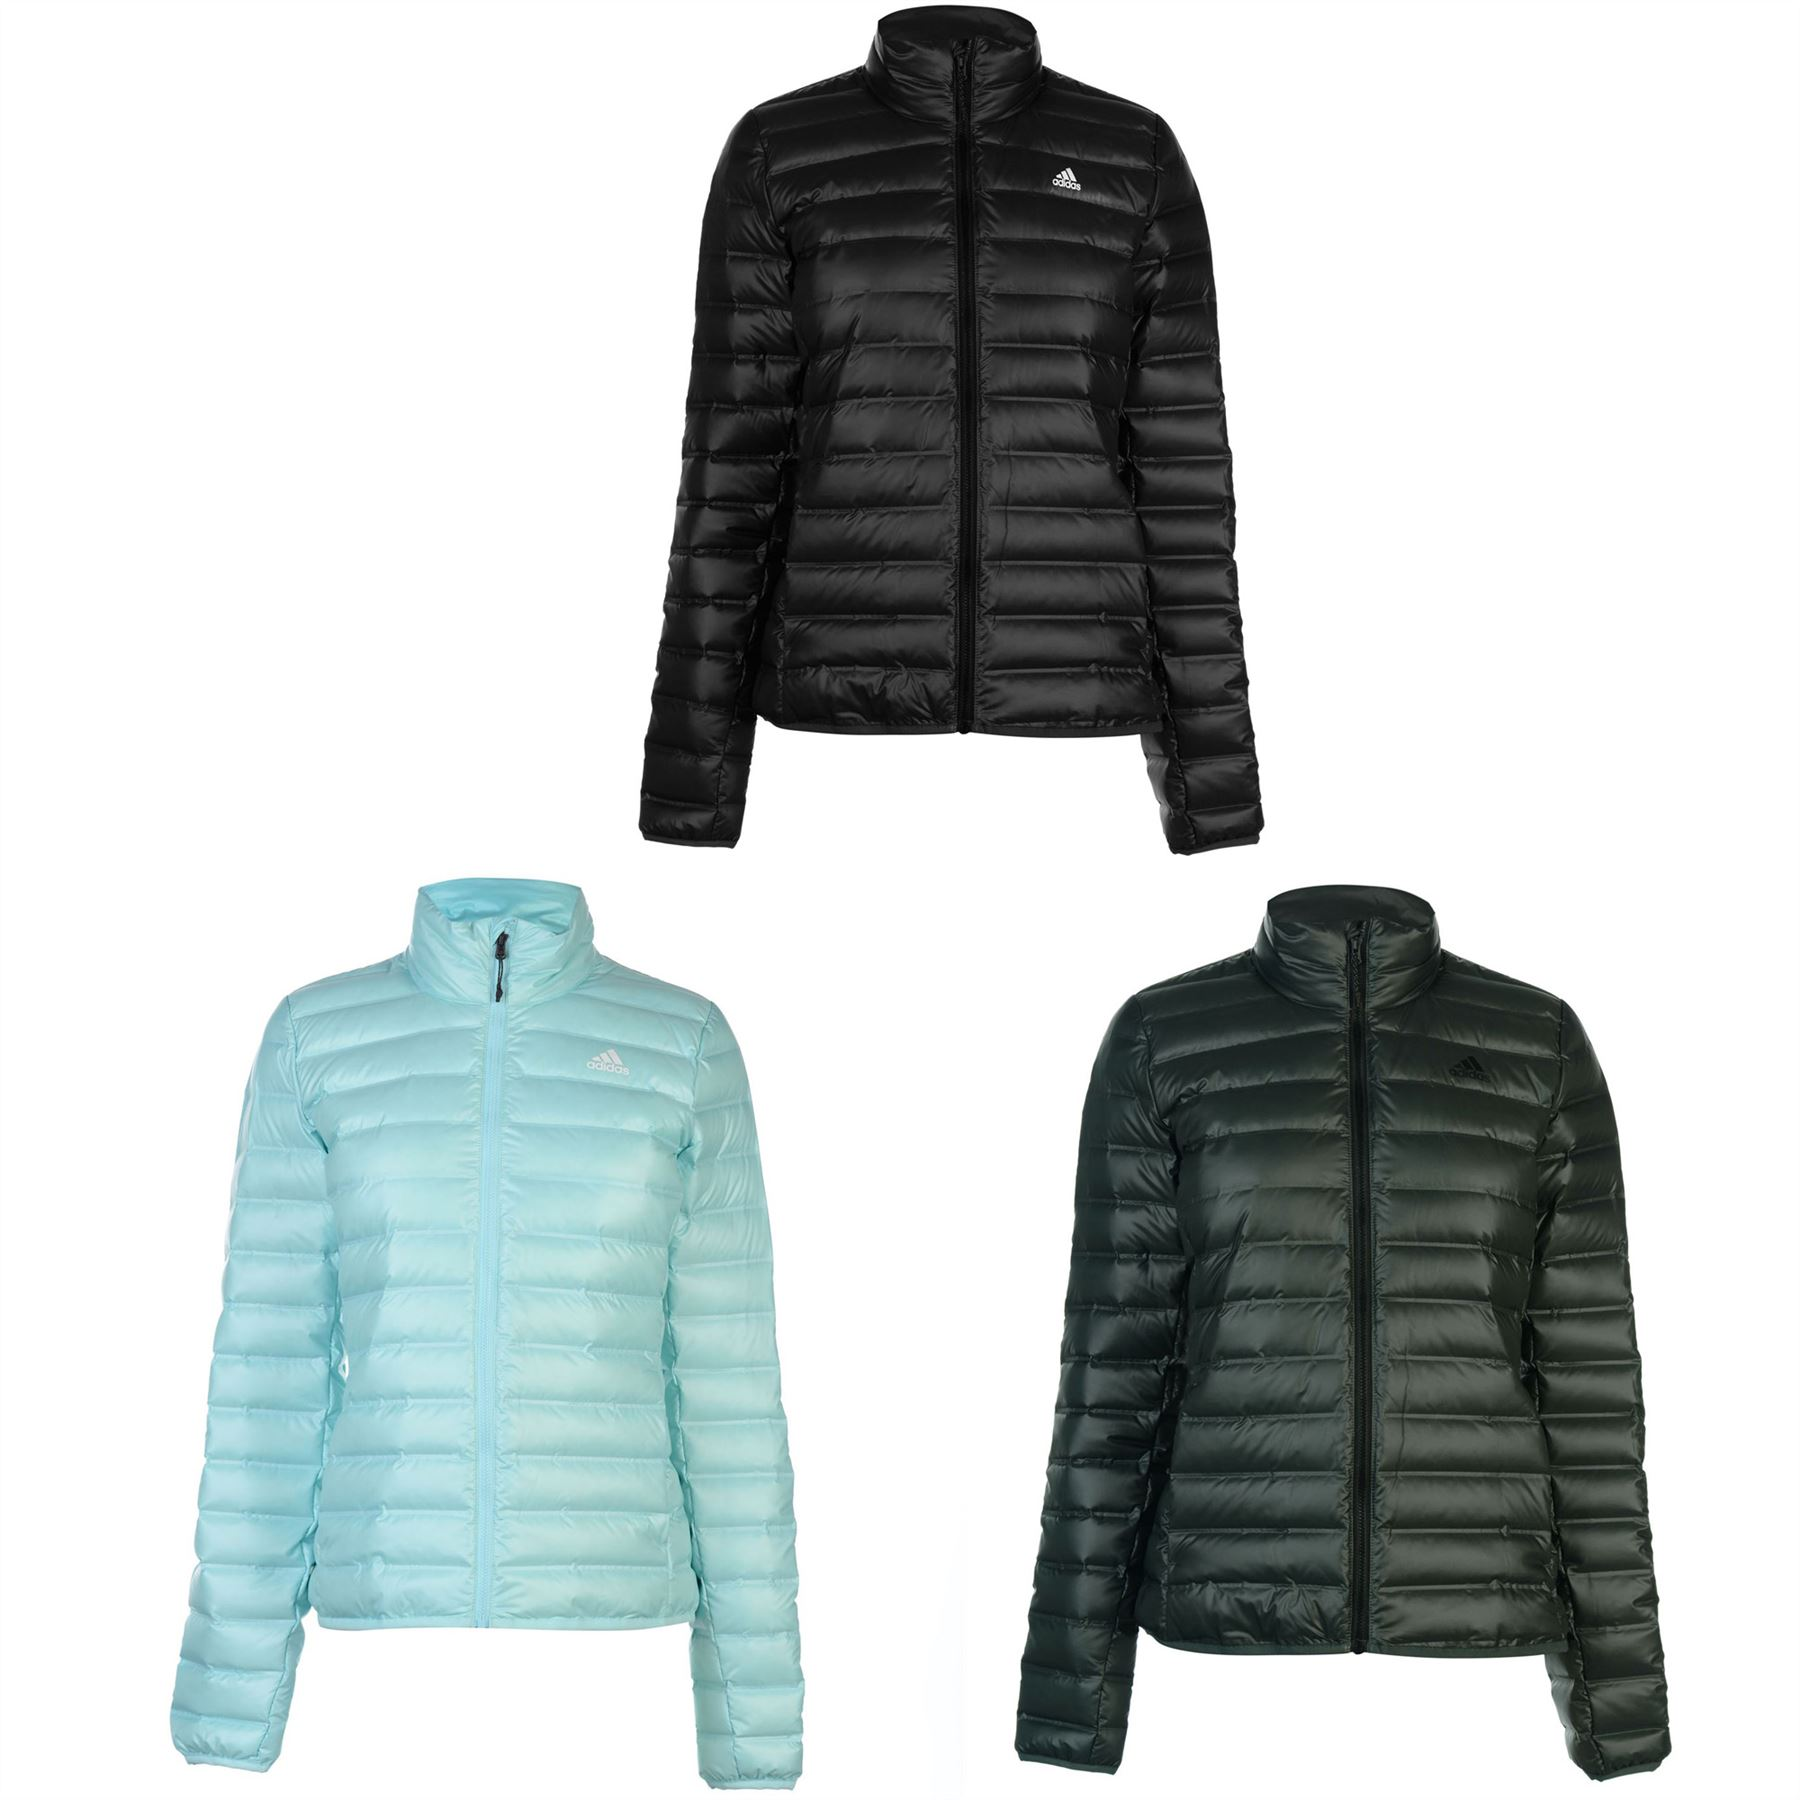 the cheapest amazon recognized brands Details about adidas Varilite Jacket Womens Coats Outerwear